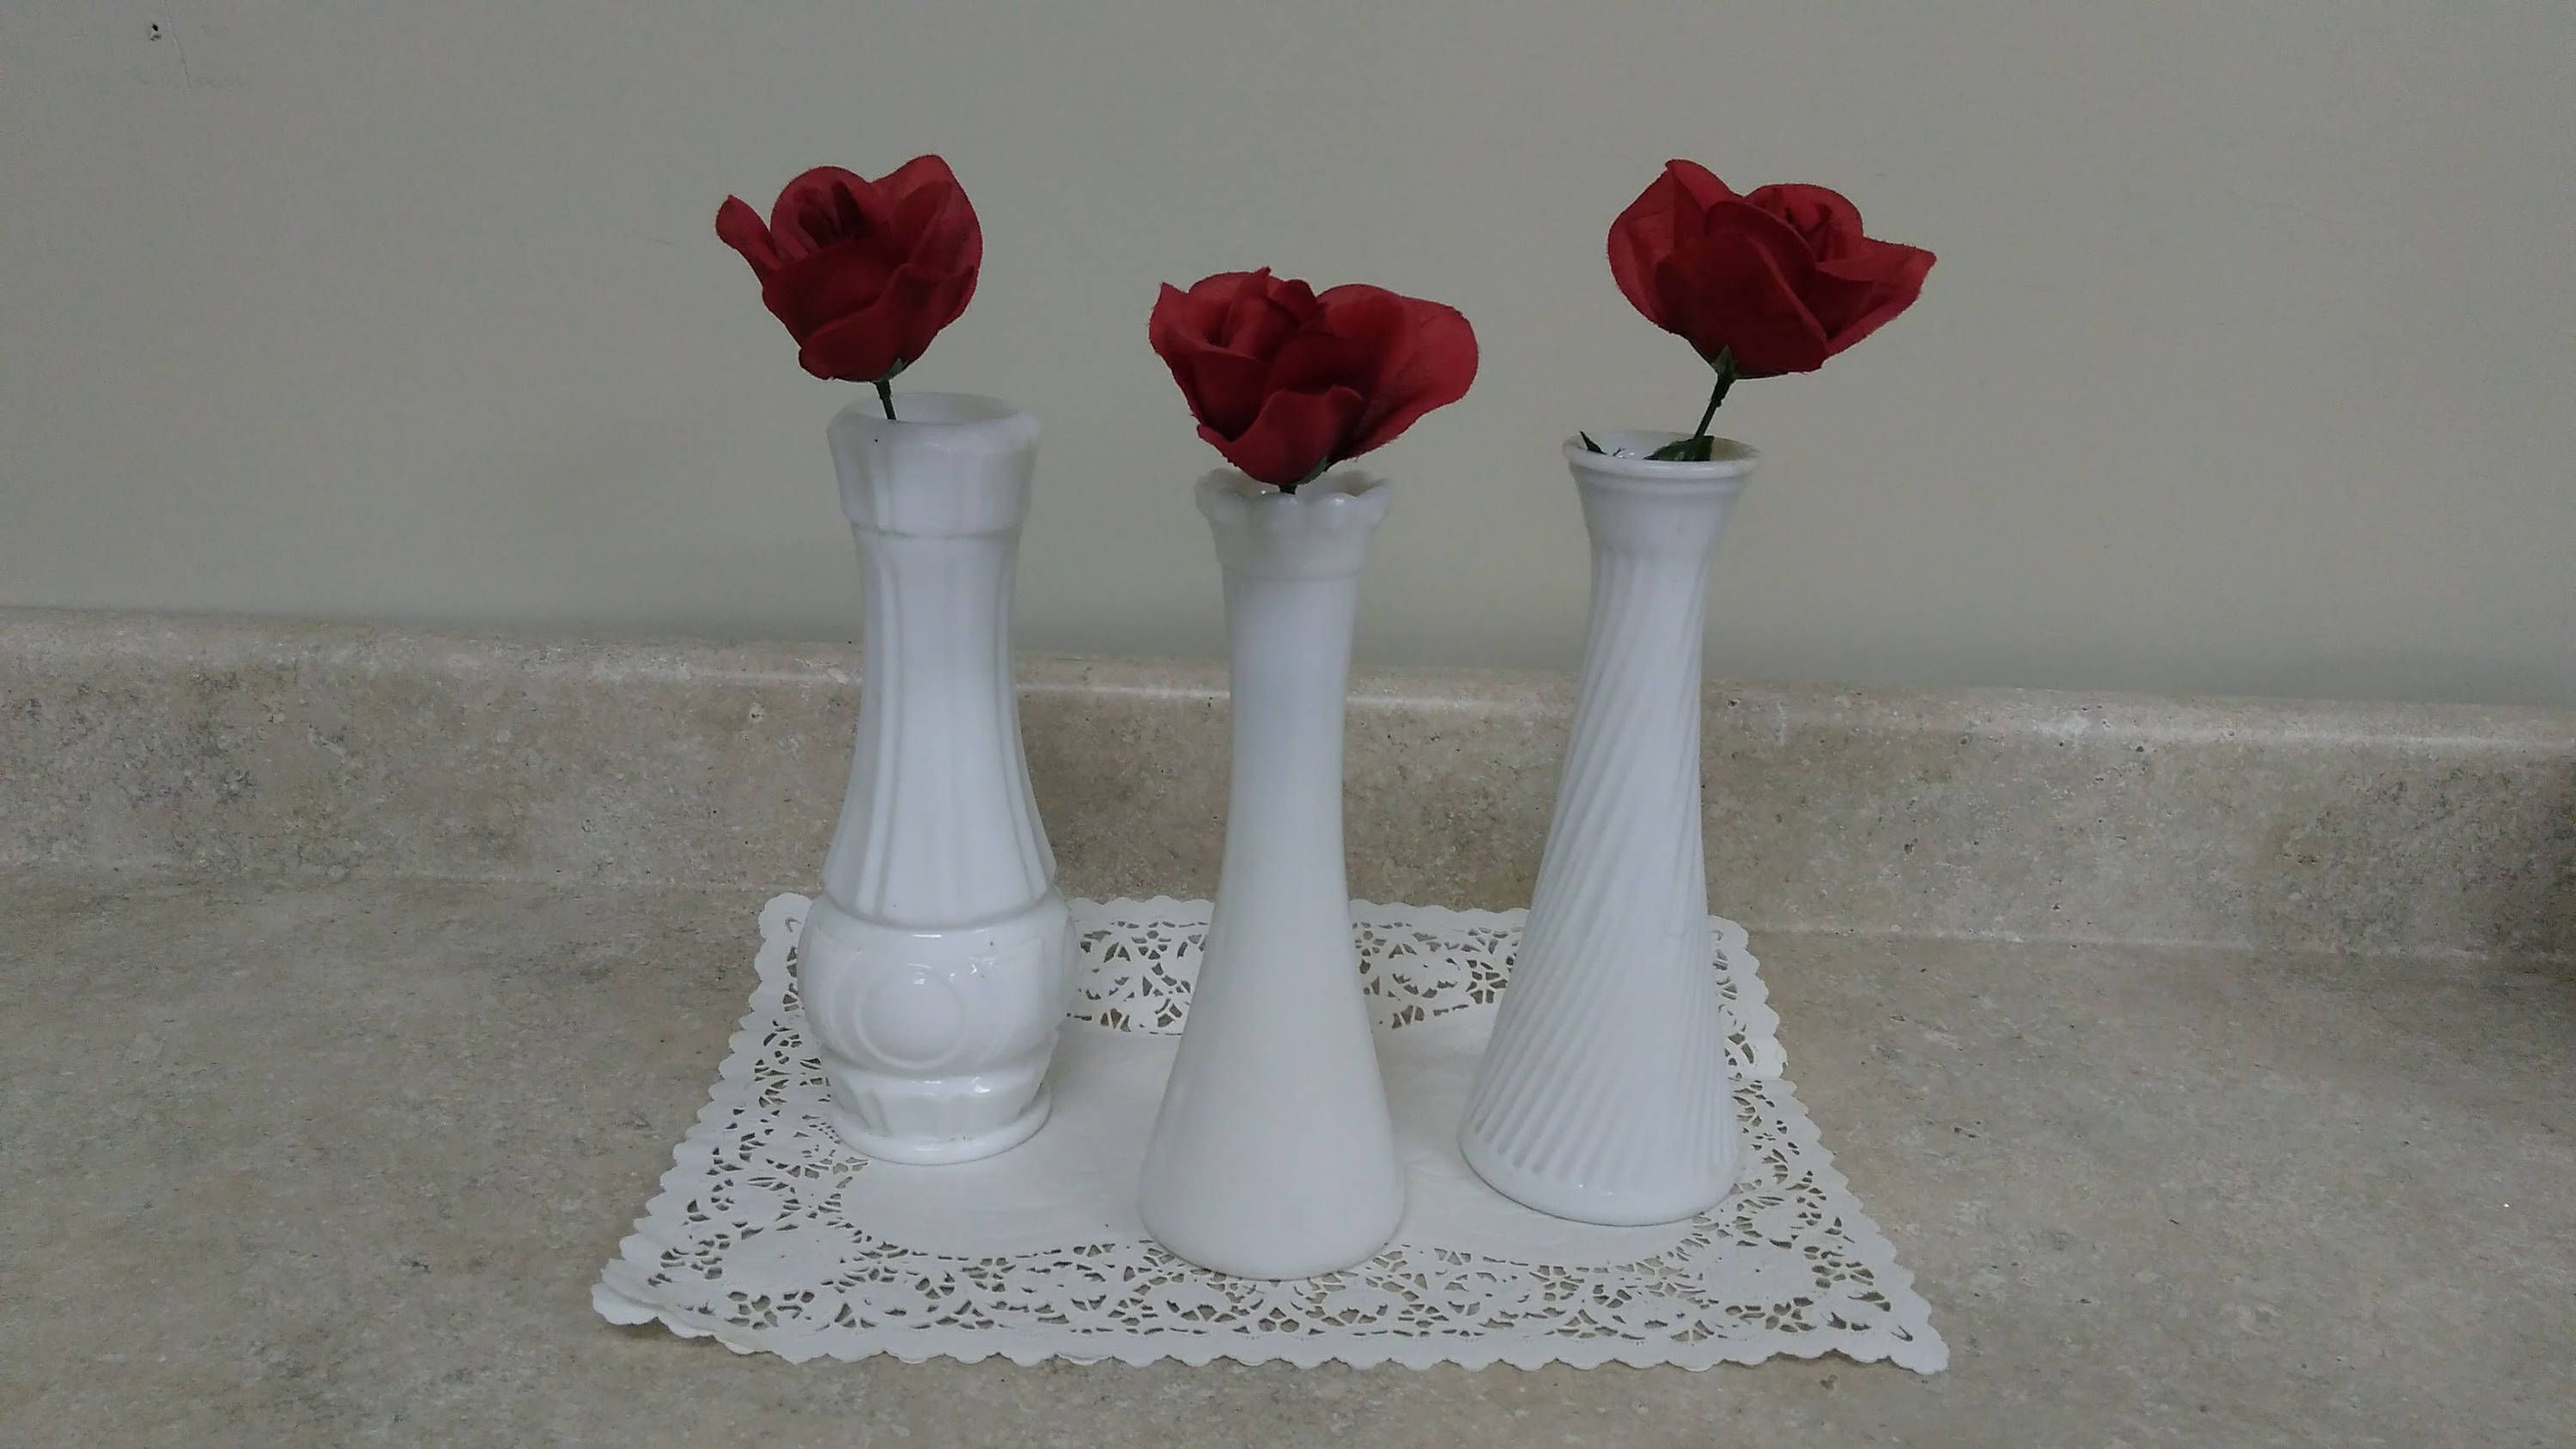 Set Of 3 Milk Glass Bud Vases Weeding Centerpiece Shabby Chic Cottage Decor by MyPurpleCowLuvsMilk on Etsy